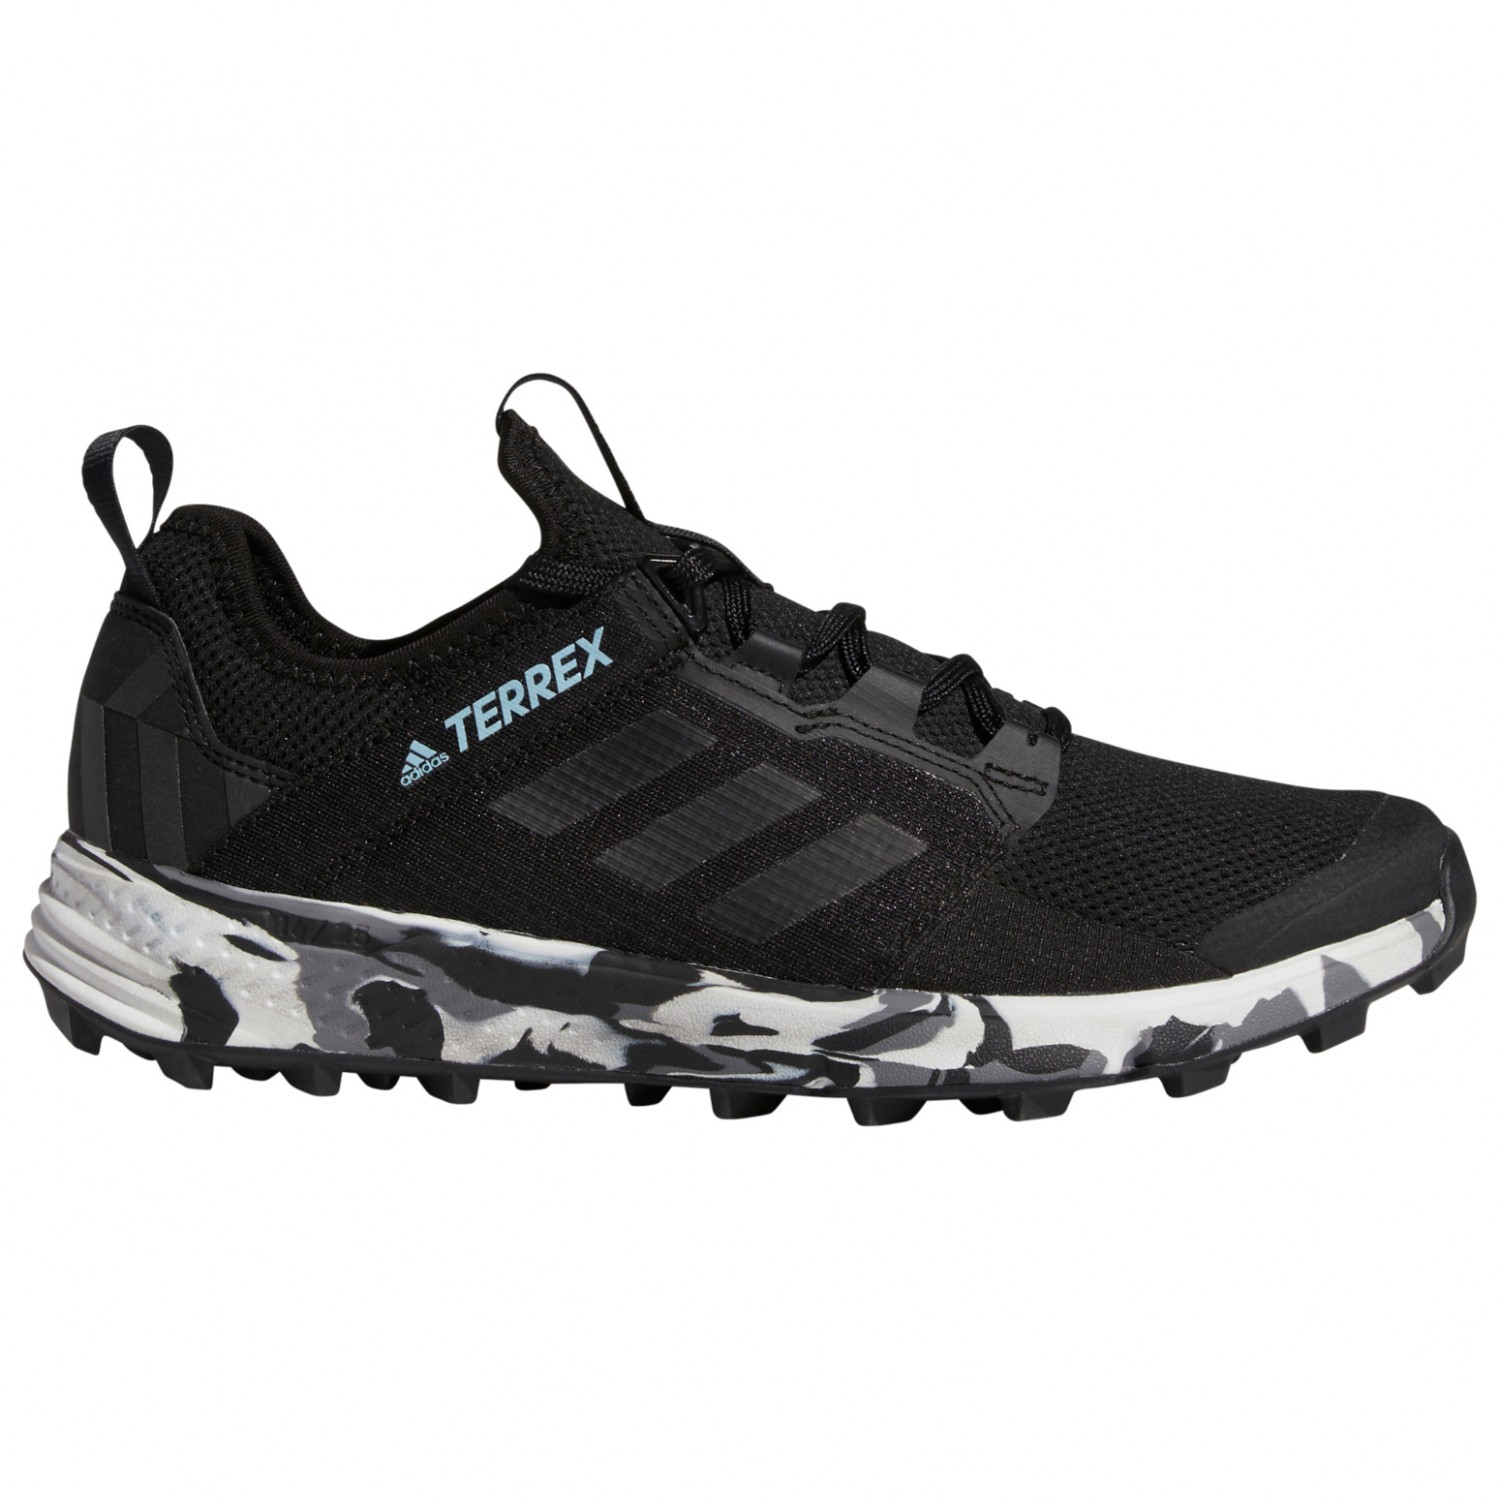 Adidas performance terrex agravic speed chaussures de